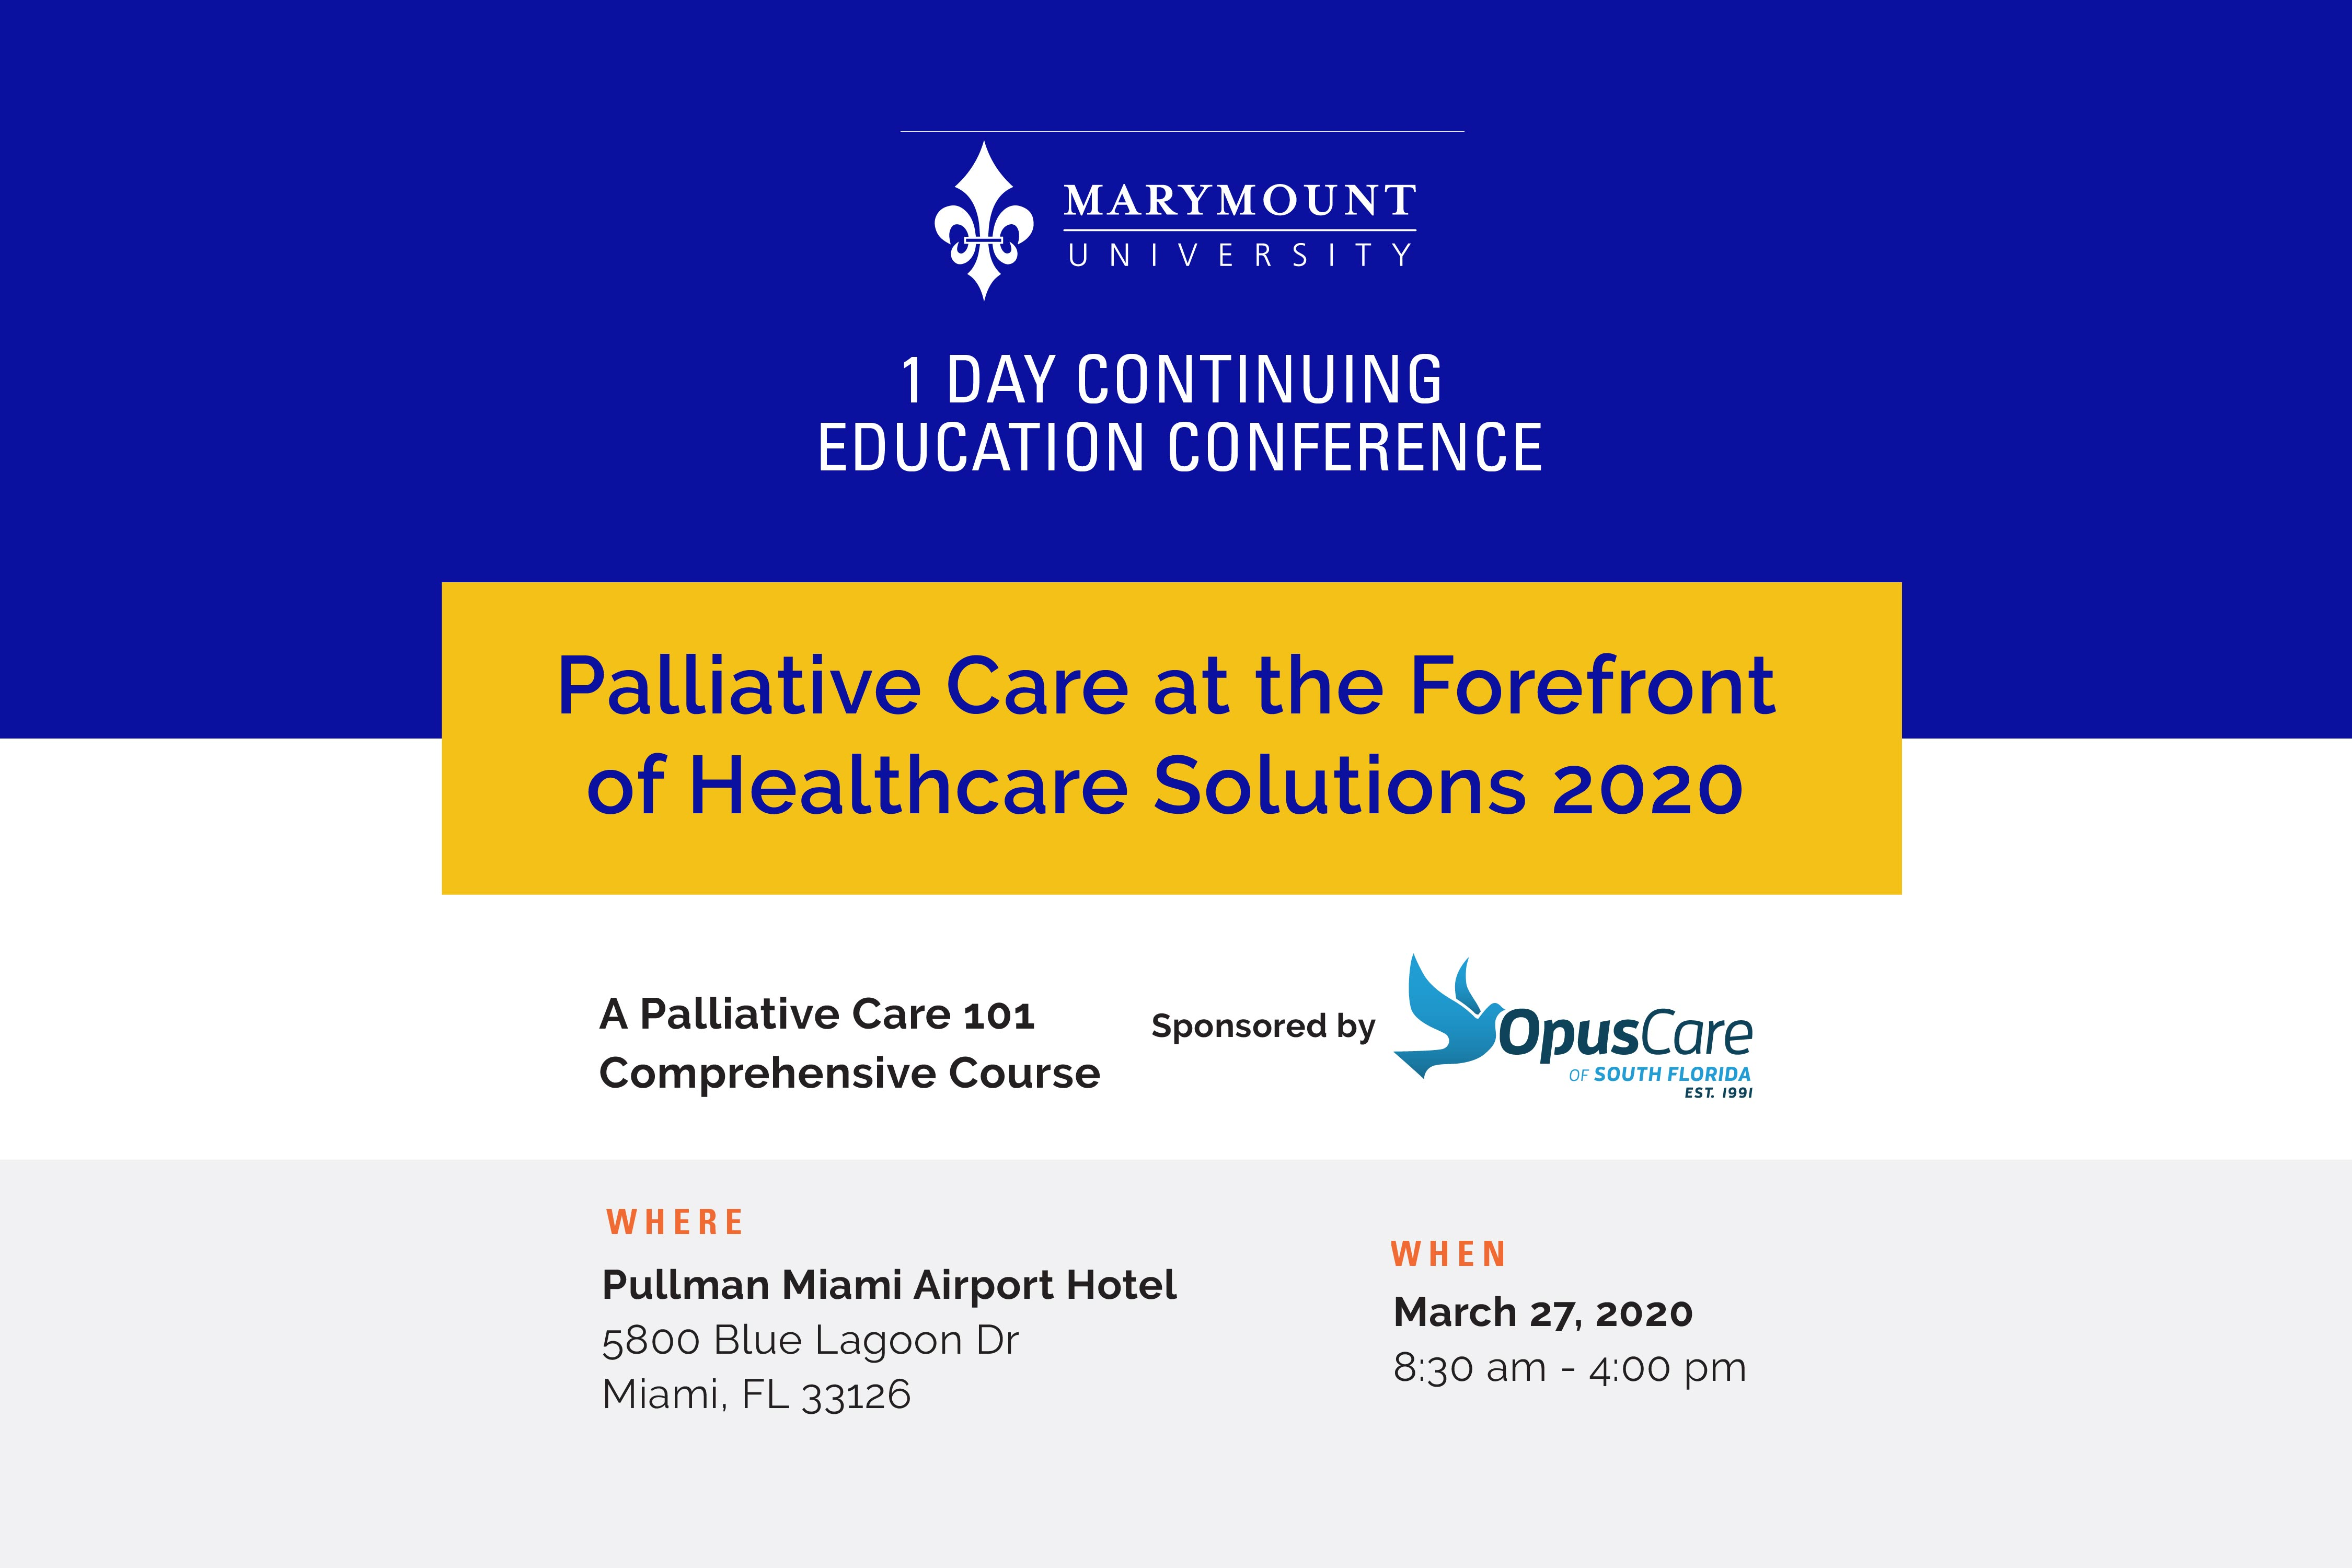 Palliative care at the Forefront of Healthcare Solutions 2020